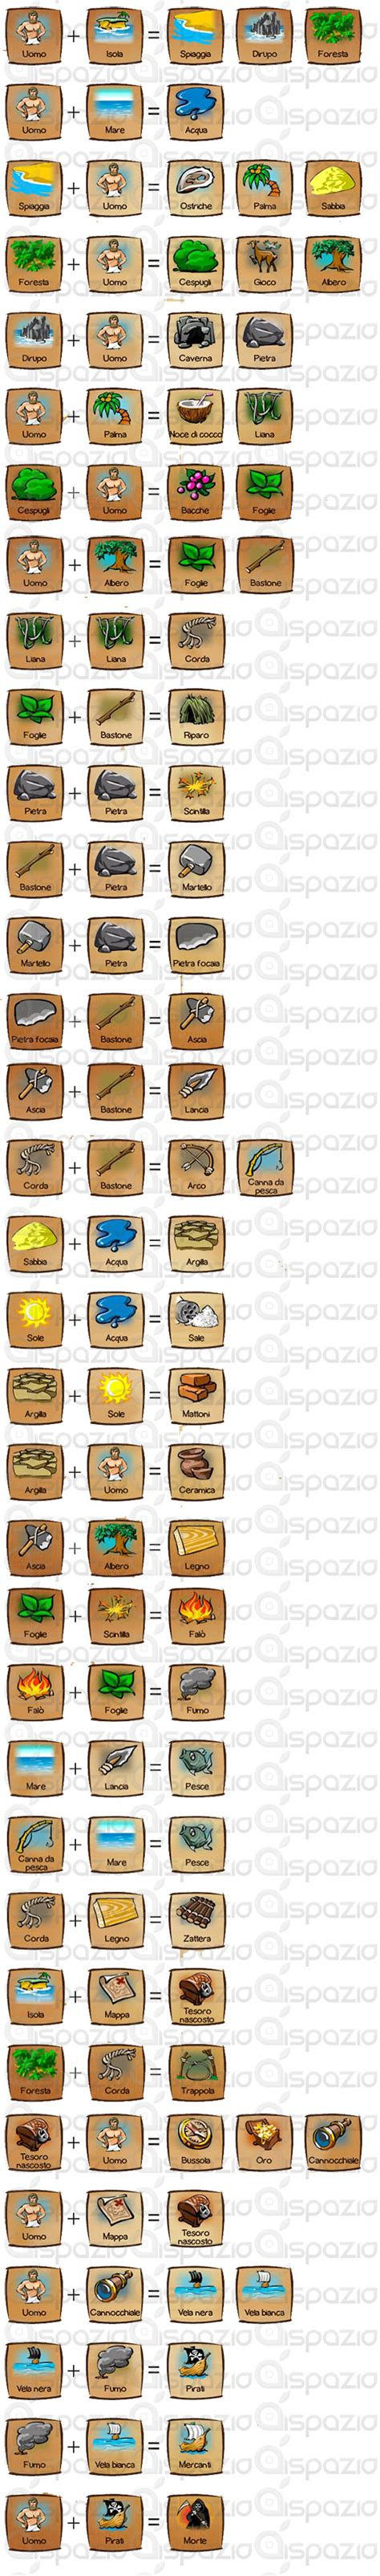 doodle god 3 soluce doodle god walkthrough completiamo al 100 sopravvissuto